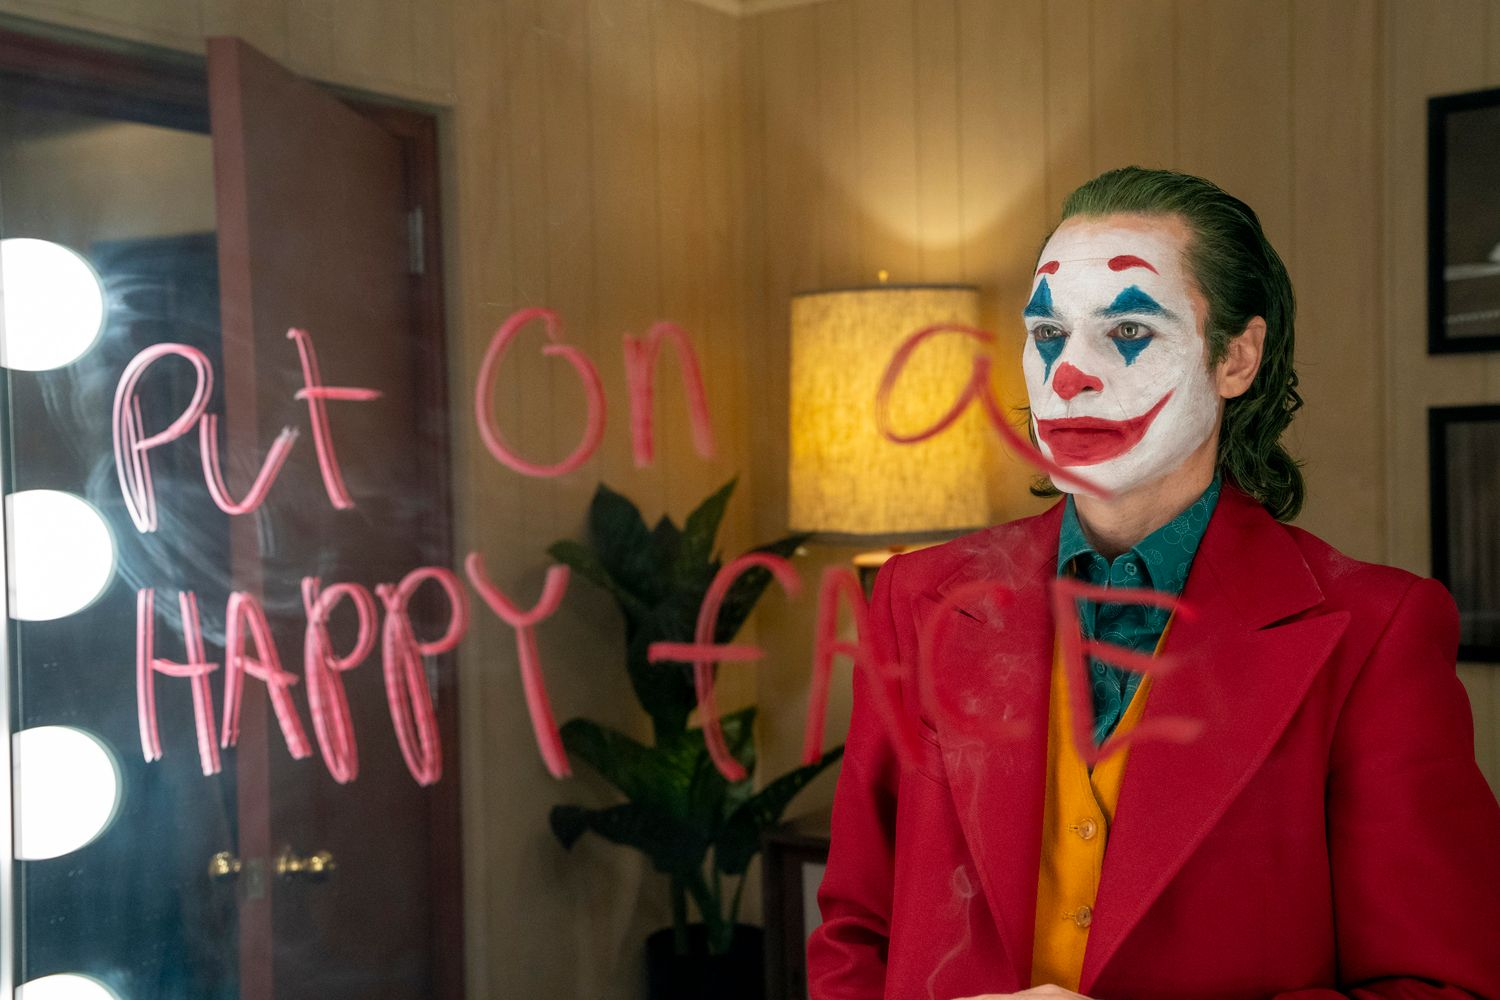 Joker 2 Theories 5 Ways the Story Could Continue